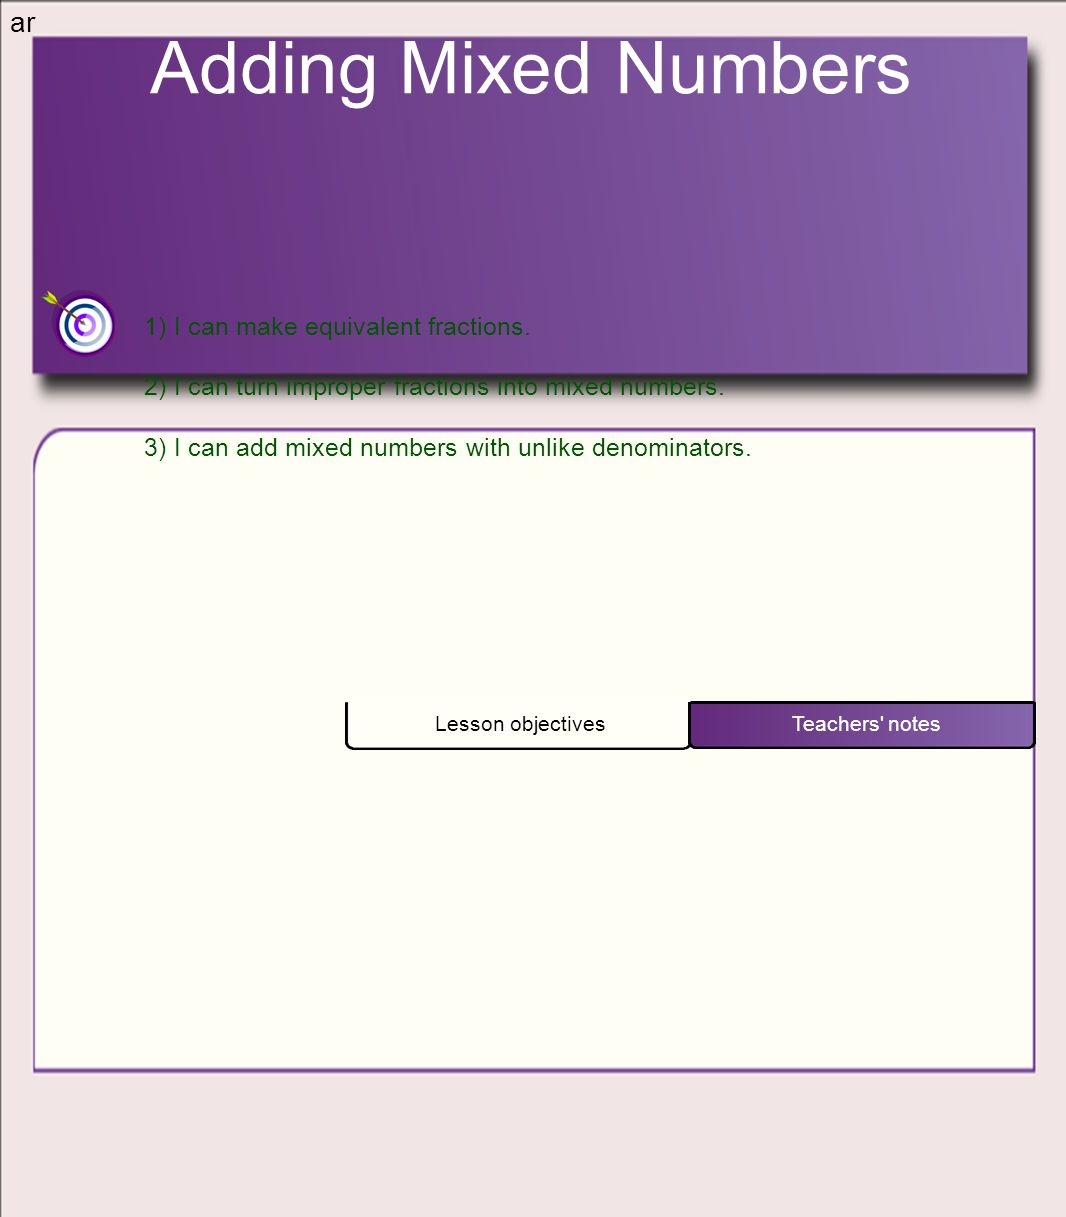 Adding Mixed Numbers ar 1) I can make equivalent fractions.